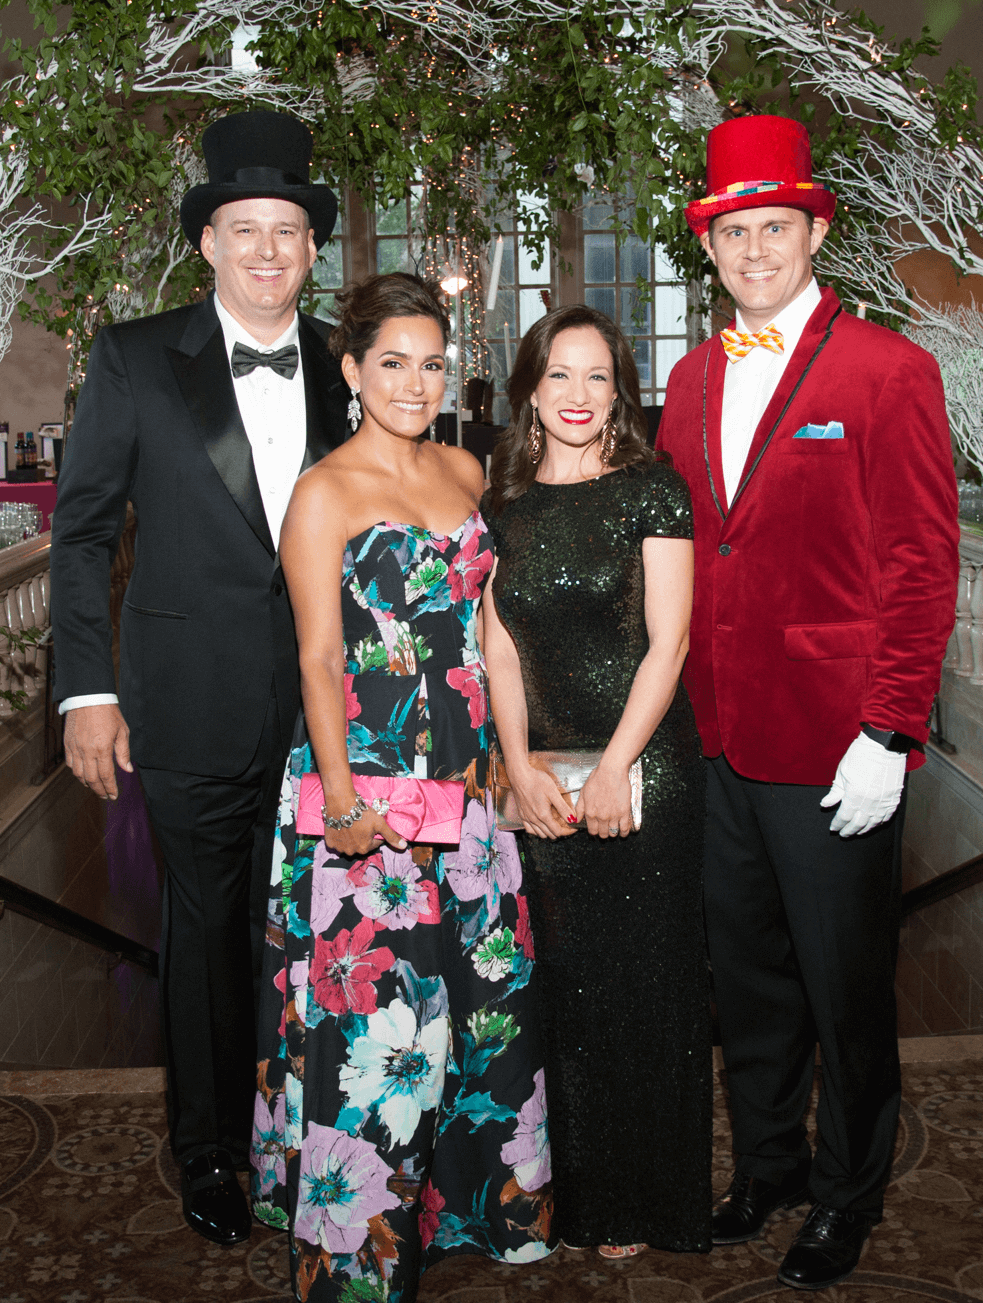 Houston, Childrens Museum of Houston Mad Hatters Ball, Oct. 2016, Truett Akin, Elva Akin Meeks, Monica Meeks